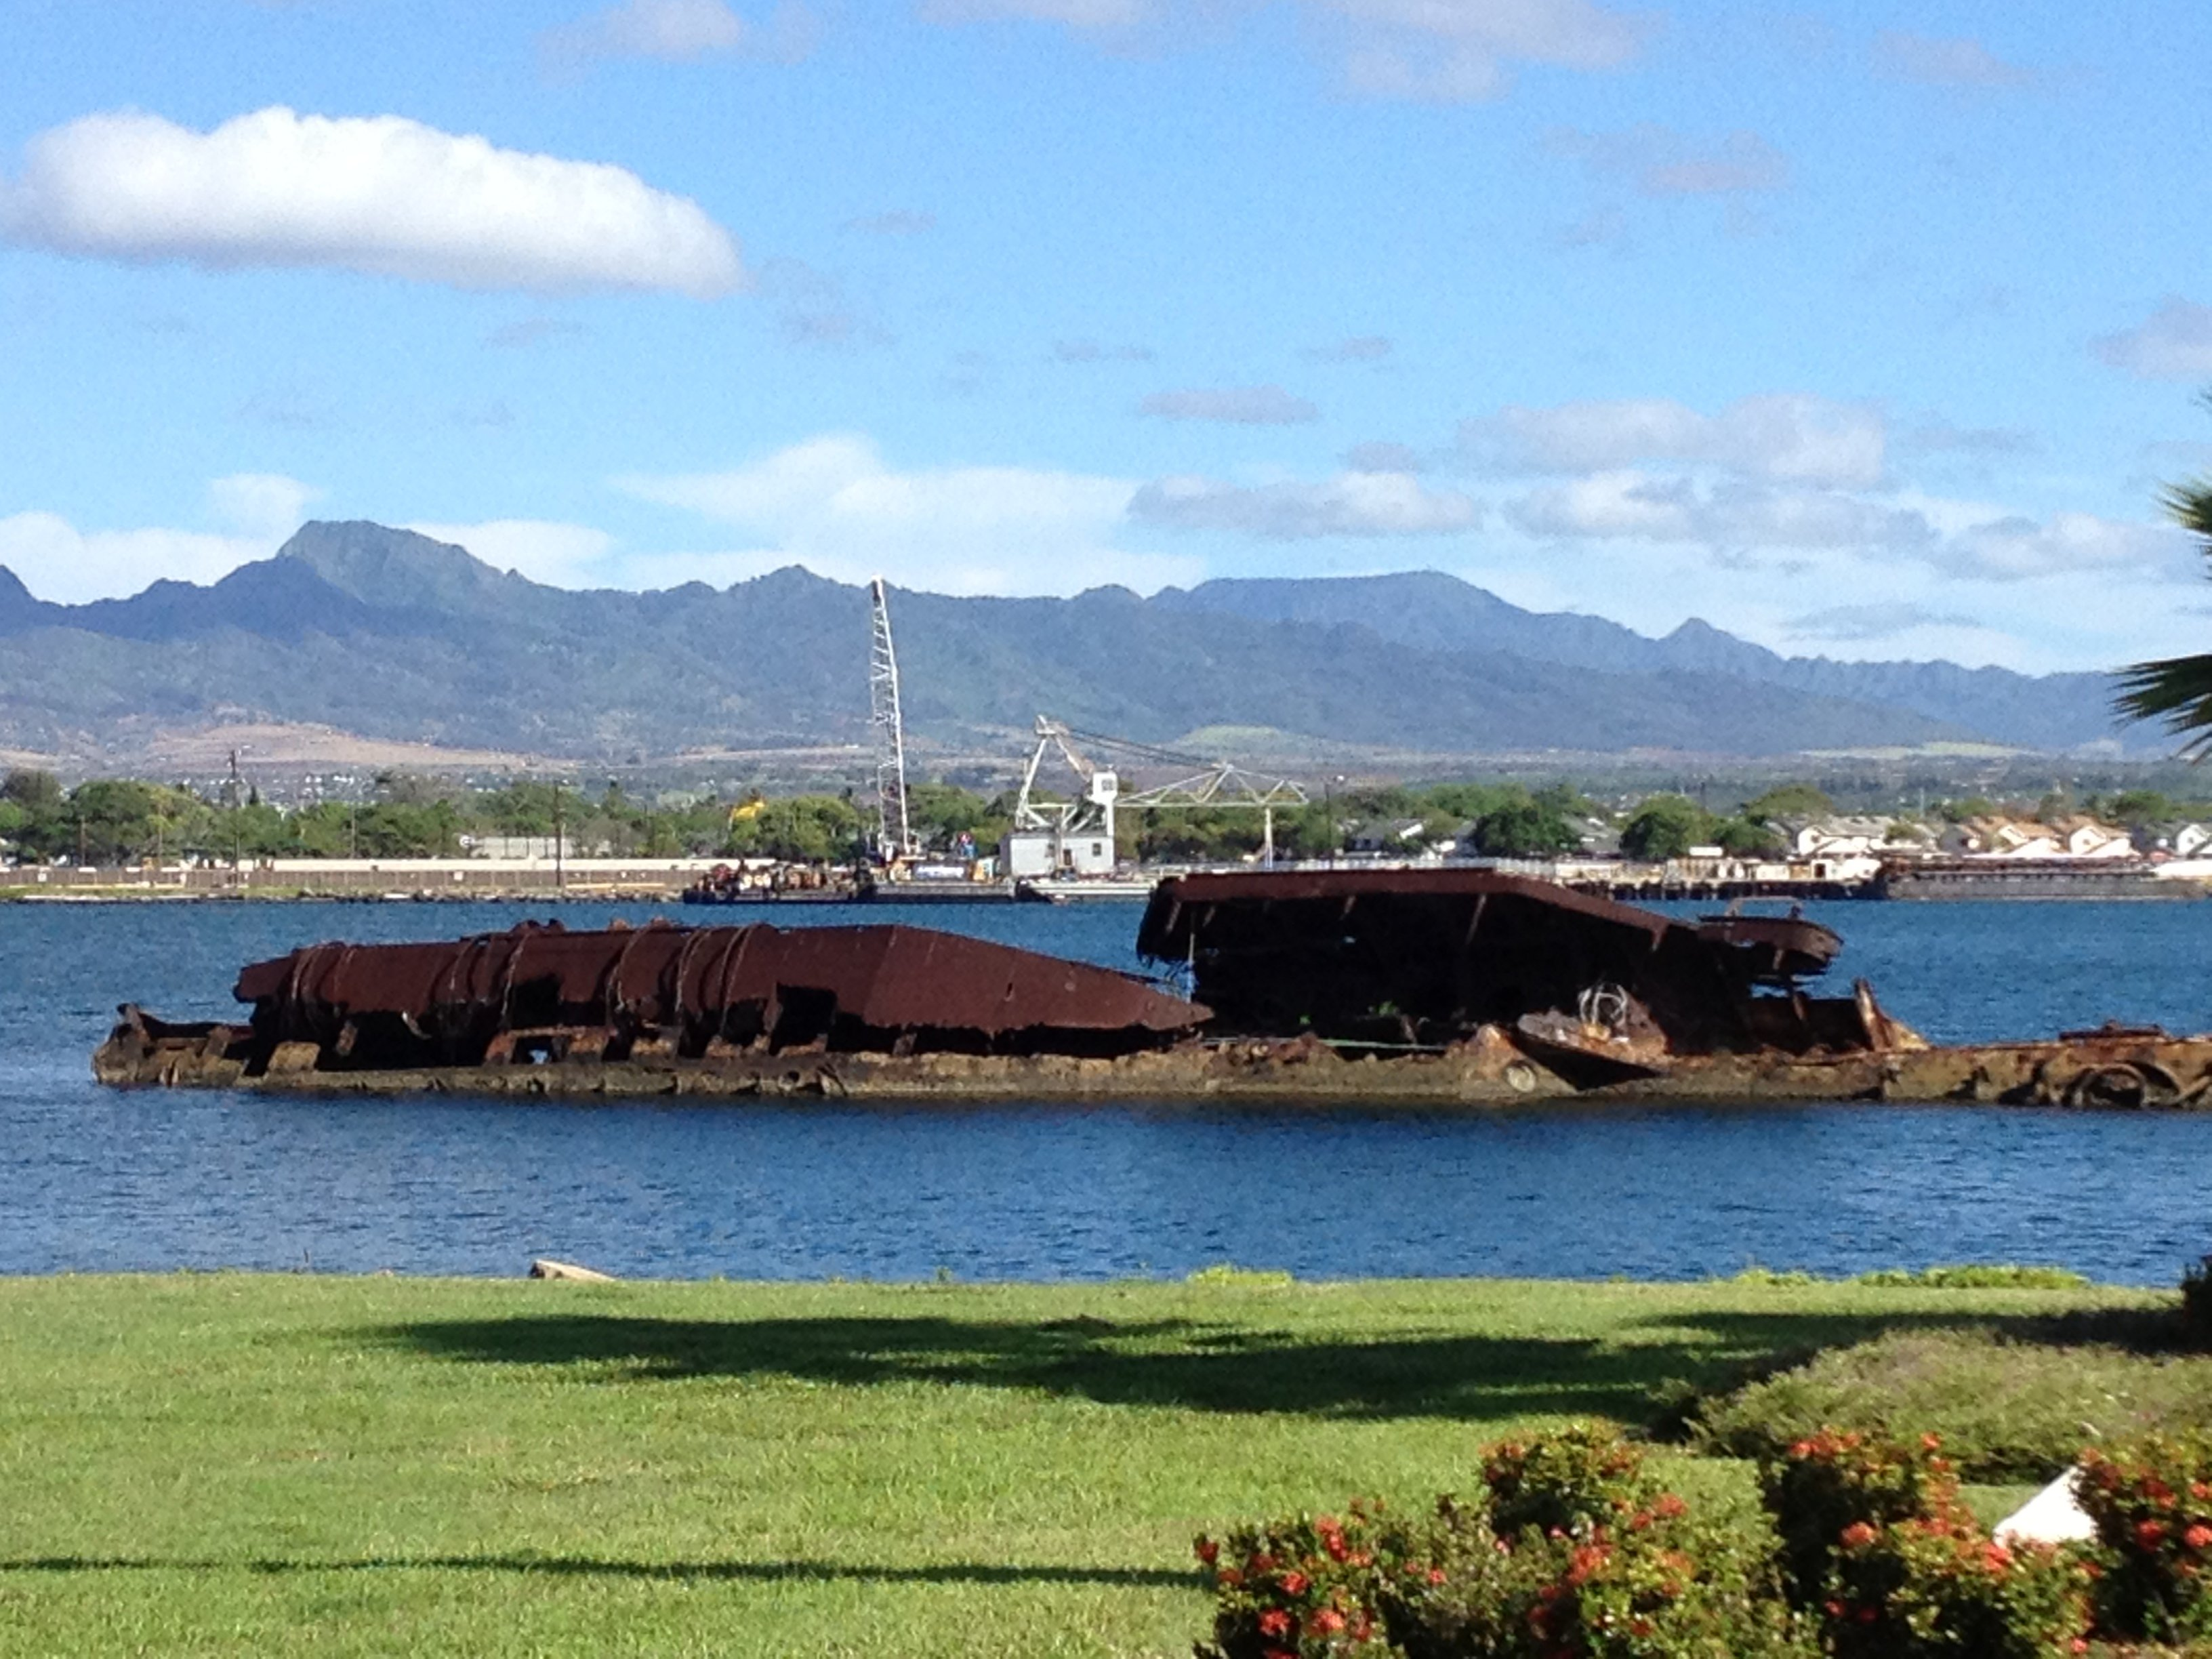 The remains of the USS Utah at Pearl Harbor